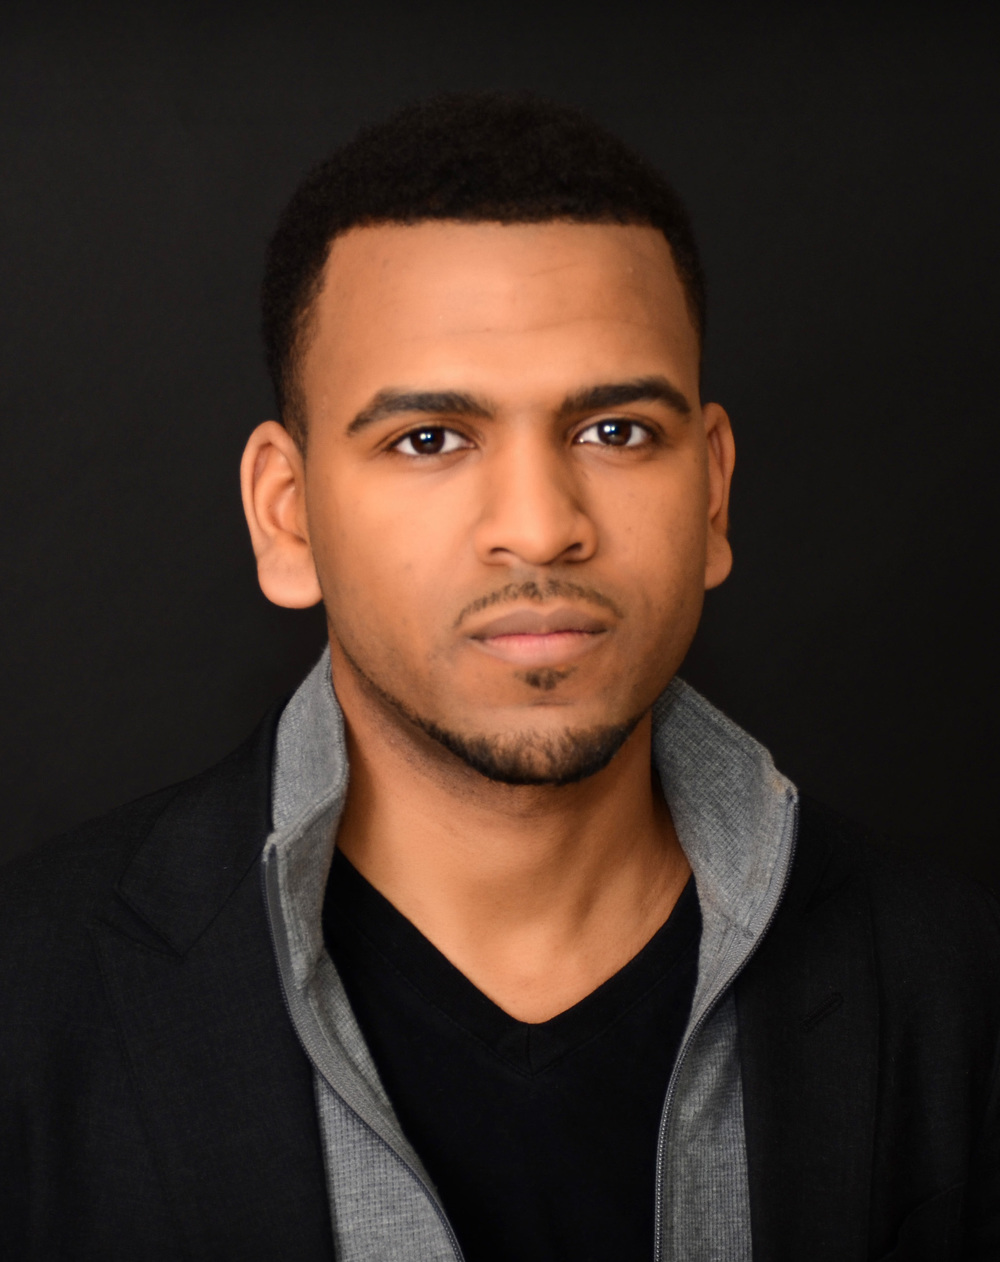 Elyas Deen Harris (Paul) is very excited to be making his debut with Bad Habit Productions. Elyas was born and raised in Dorchester, MA. Elyas received his degree from Bucknell University in education and attended The Boston Arts Academy as a Theatre Major. Since he has returned he has become invested in the Boston theatre community. Favorite acting credits include the Great War Theatre Project: UK Tour (TC² Theatre Company), Macbeth (Bucknell Theatre), and No Exit (Bucknell Theatre). He has spent his post graduate years teaching special education for the Boston Public Schools and working on the Street Team Member for Company One Theatre. He also worked as a teaching artist for The Theatre Offensive and Asian American Civic Association. Elyas' bad habit is that he always lets his laundry pile up before reluctantly dragging his clothes to the laundromat.